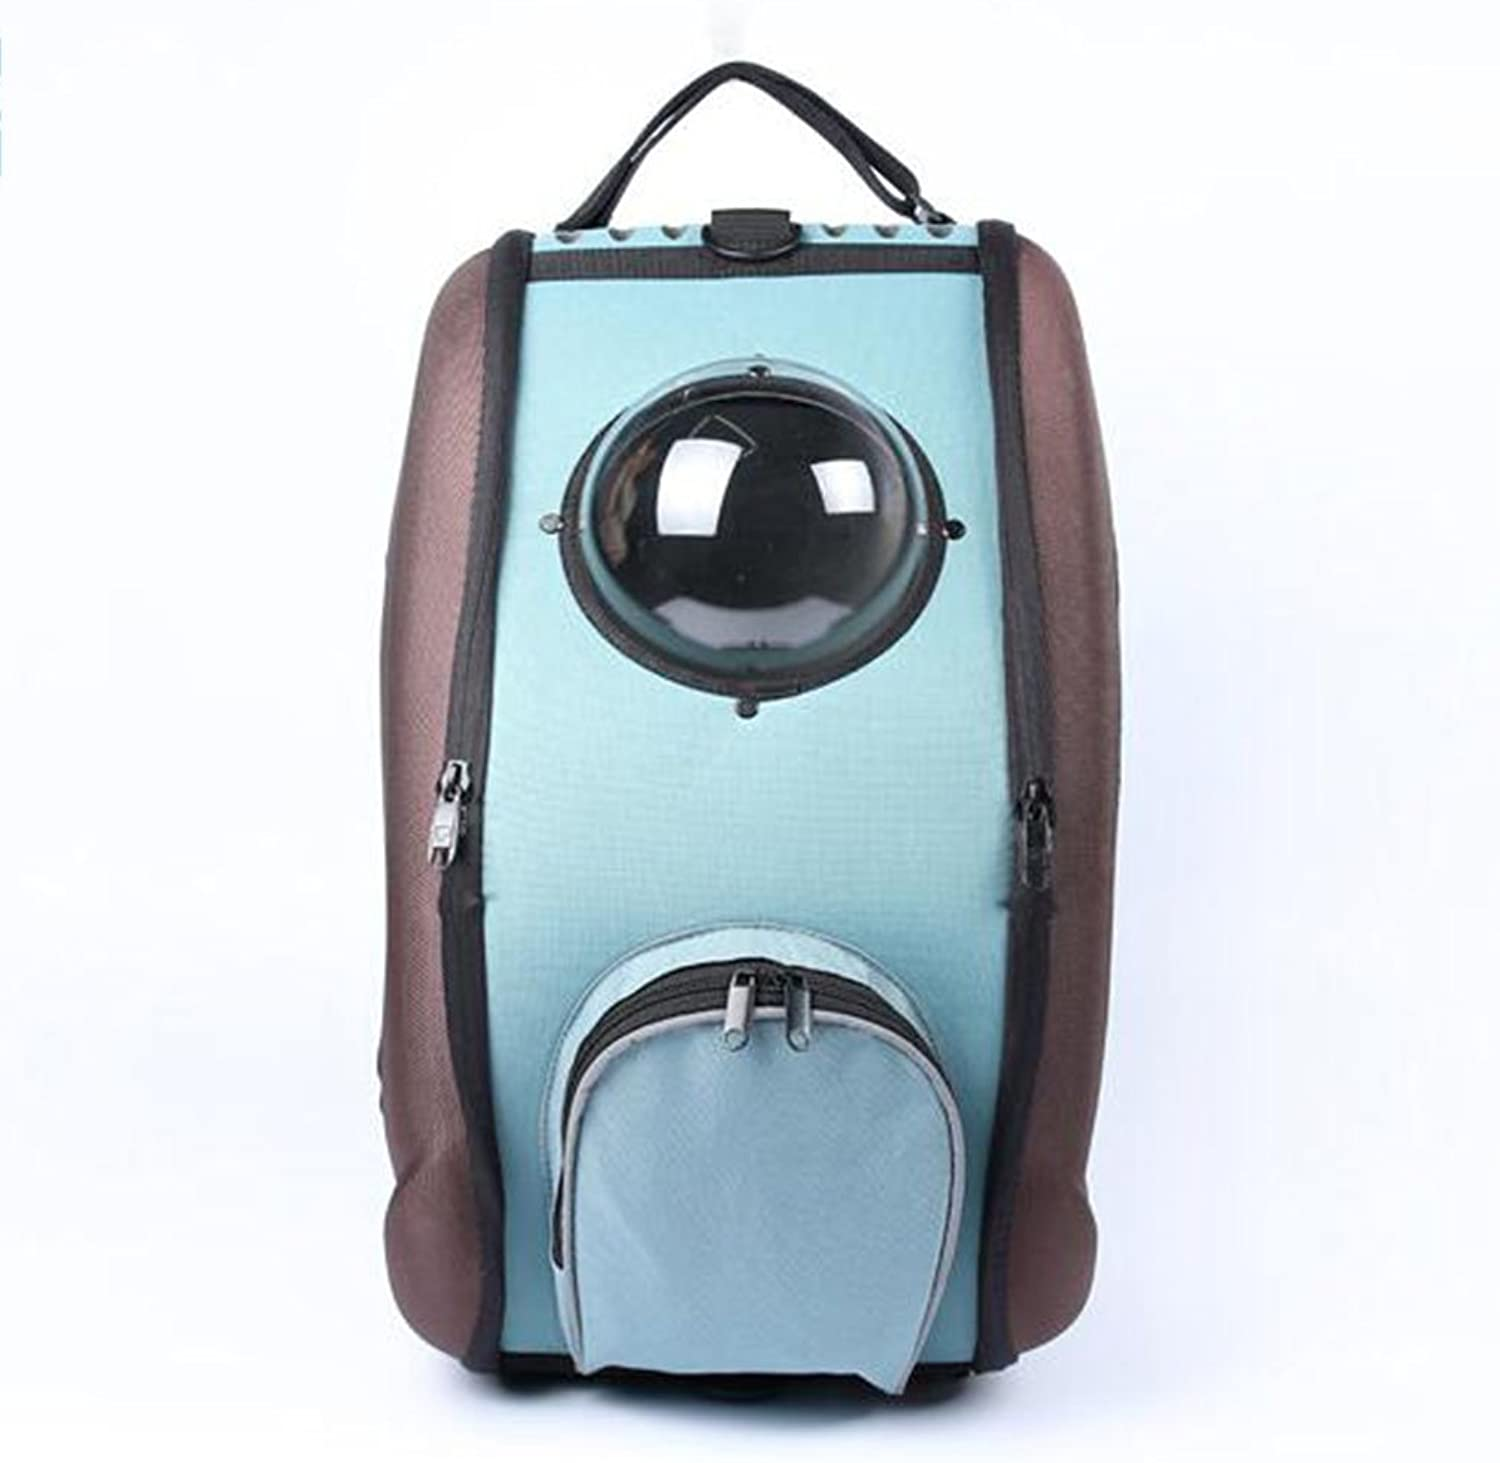 Astronaut Rolling Pet Carrier Foldable Travel Bag Breathable Home Outdoor Water